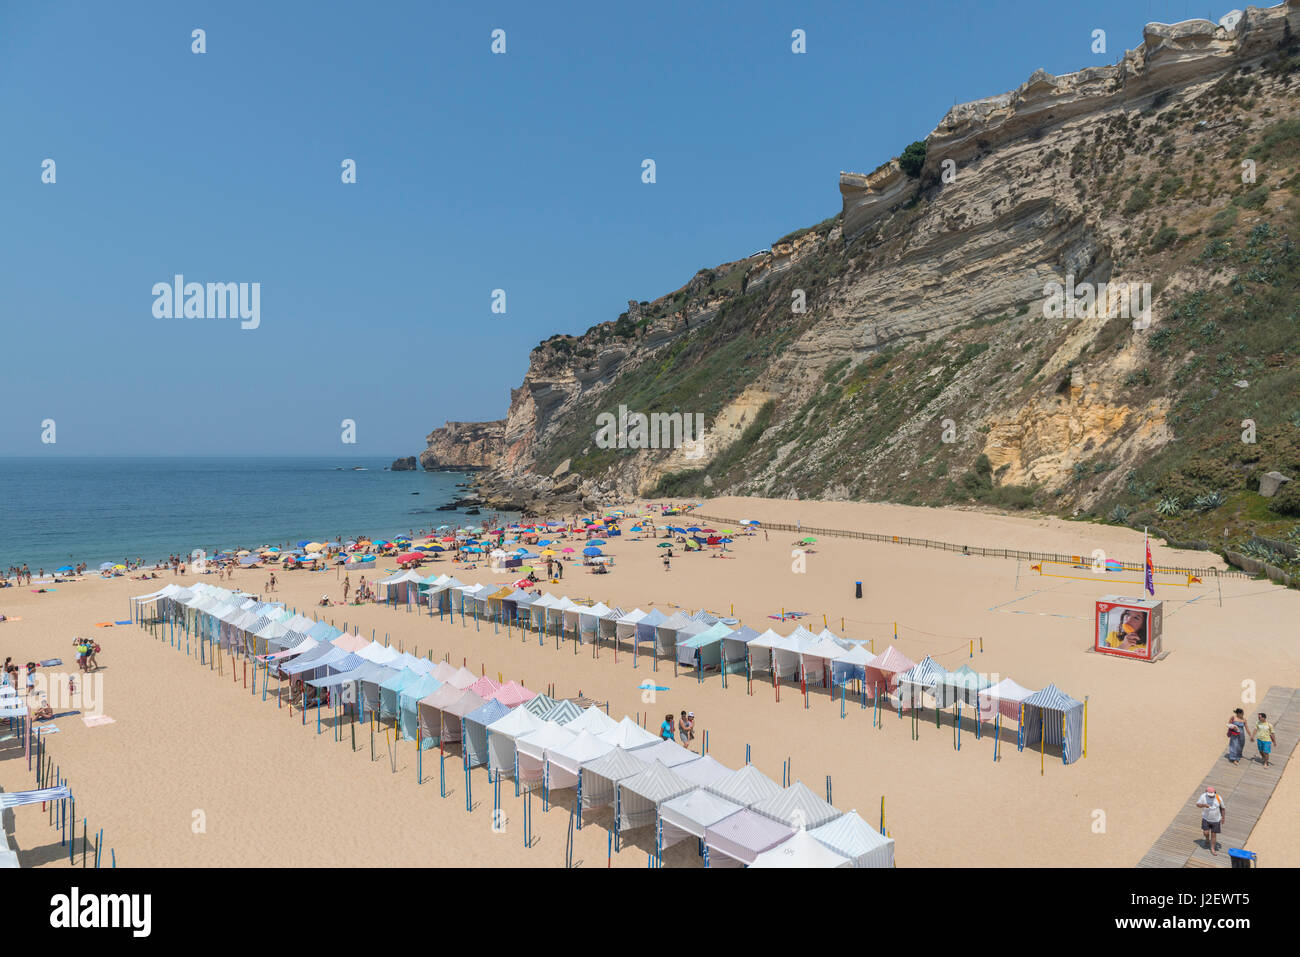 Portugal, Nazare, striped cabanas on beach (Large format sizes available) Stock Photo